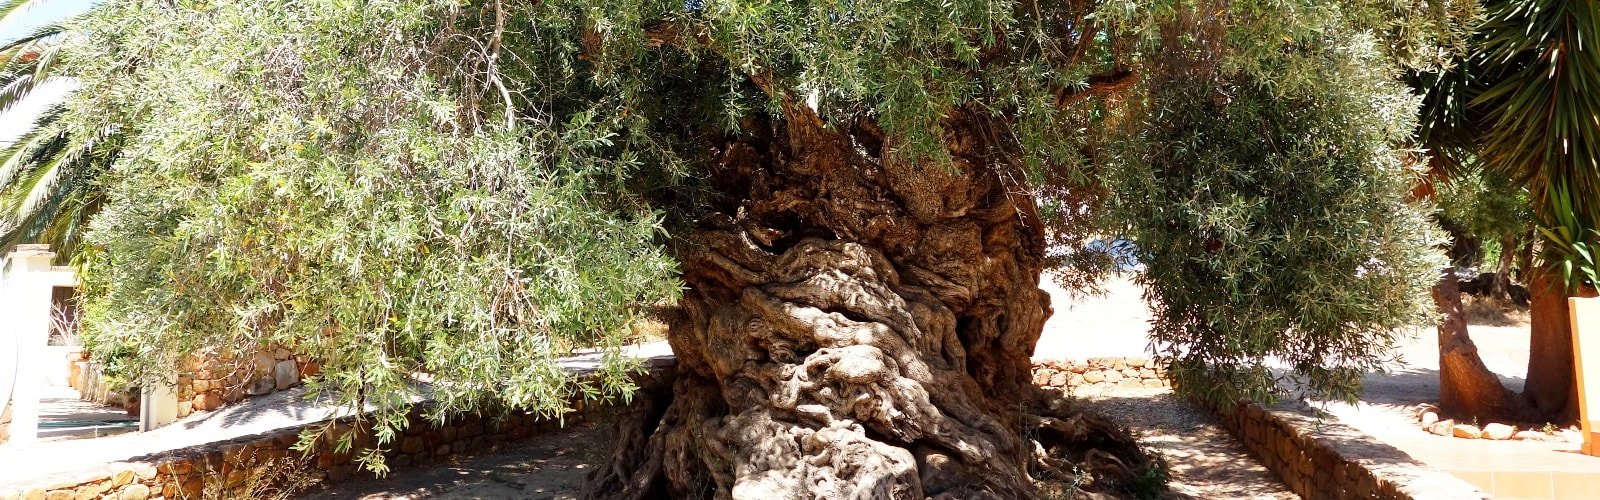 the oldest olive tree in the world vouves